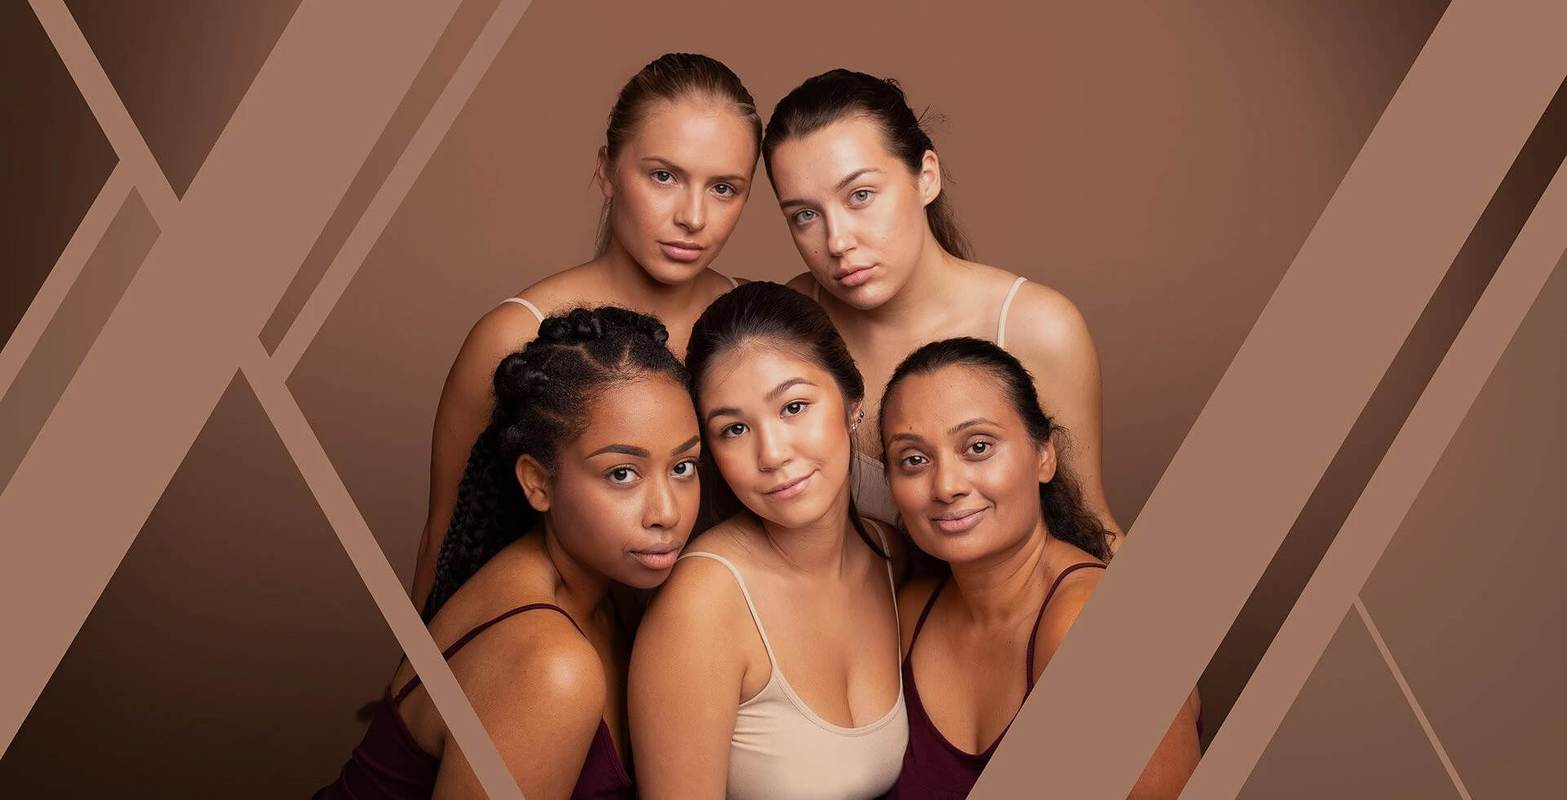 Five Beautiful Women of Mixed Ethnicity Wearing Puzzle Makeup